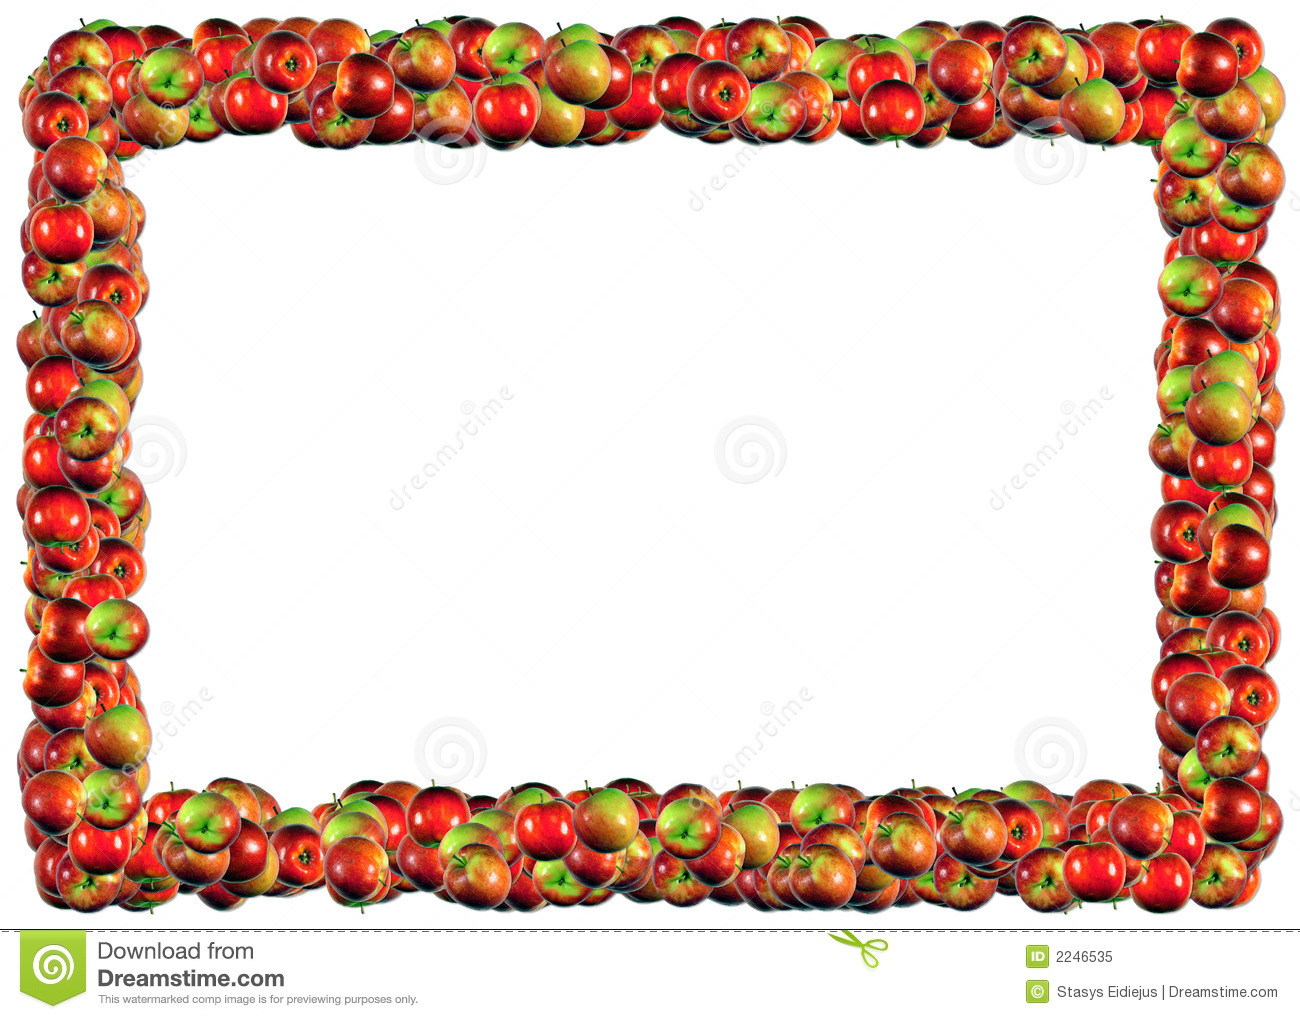 Apples Frame Royalty Free Stock Photo - Image: 2246535